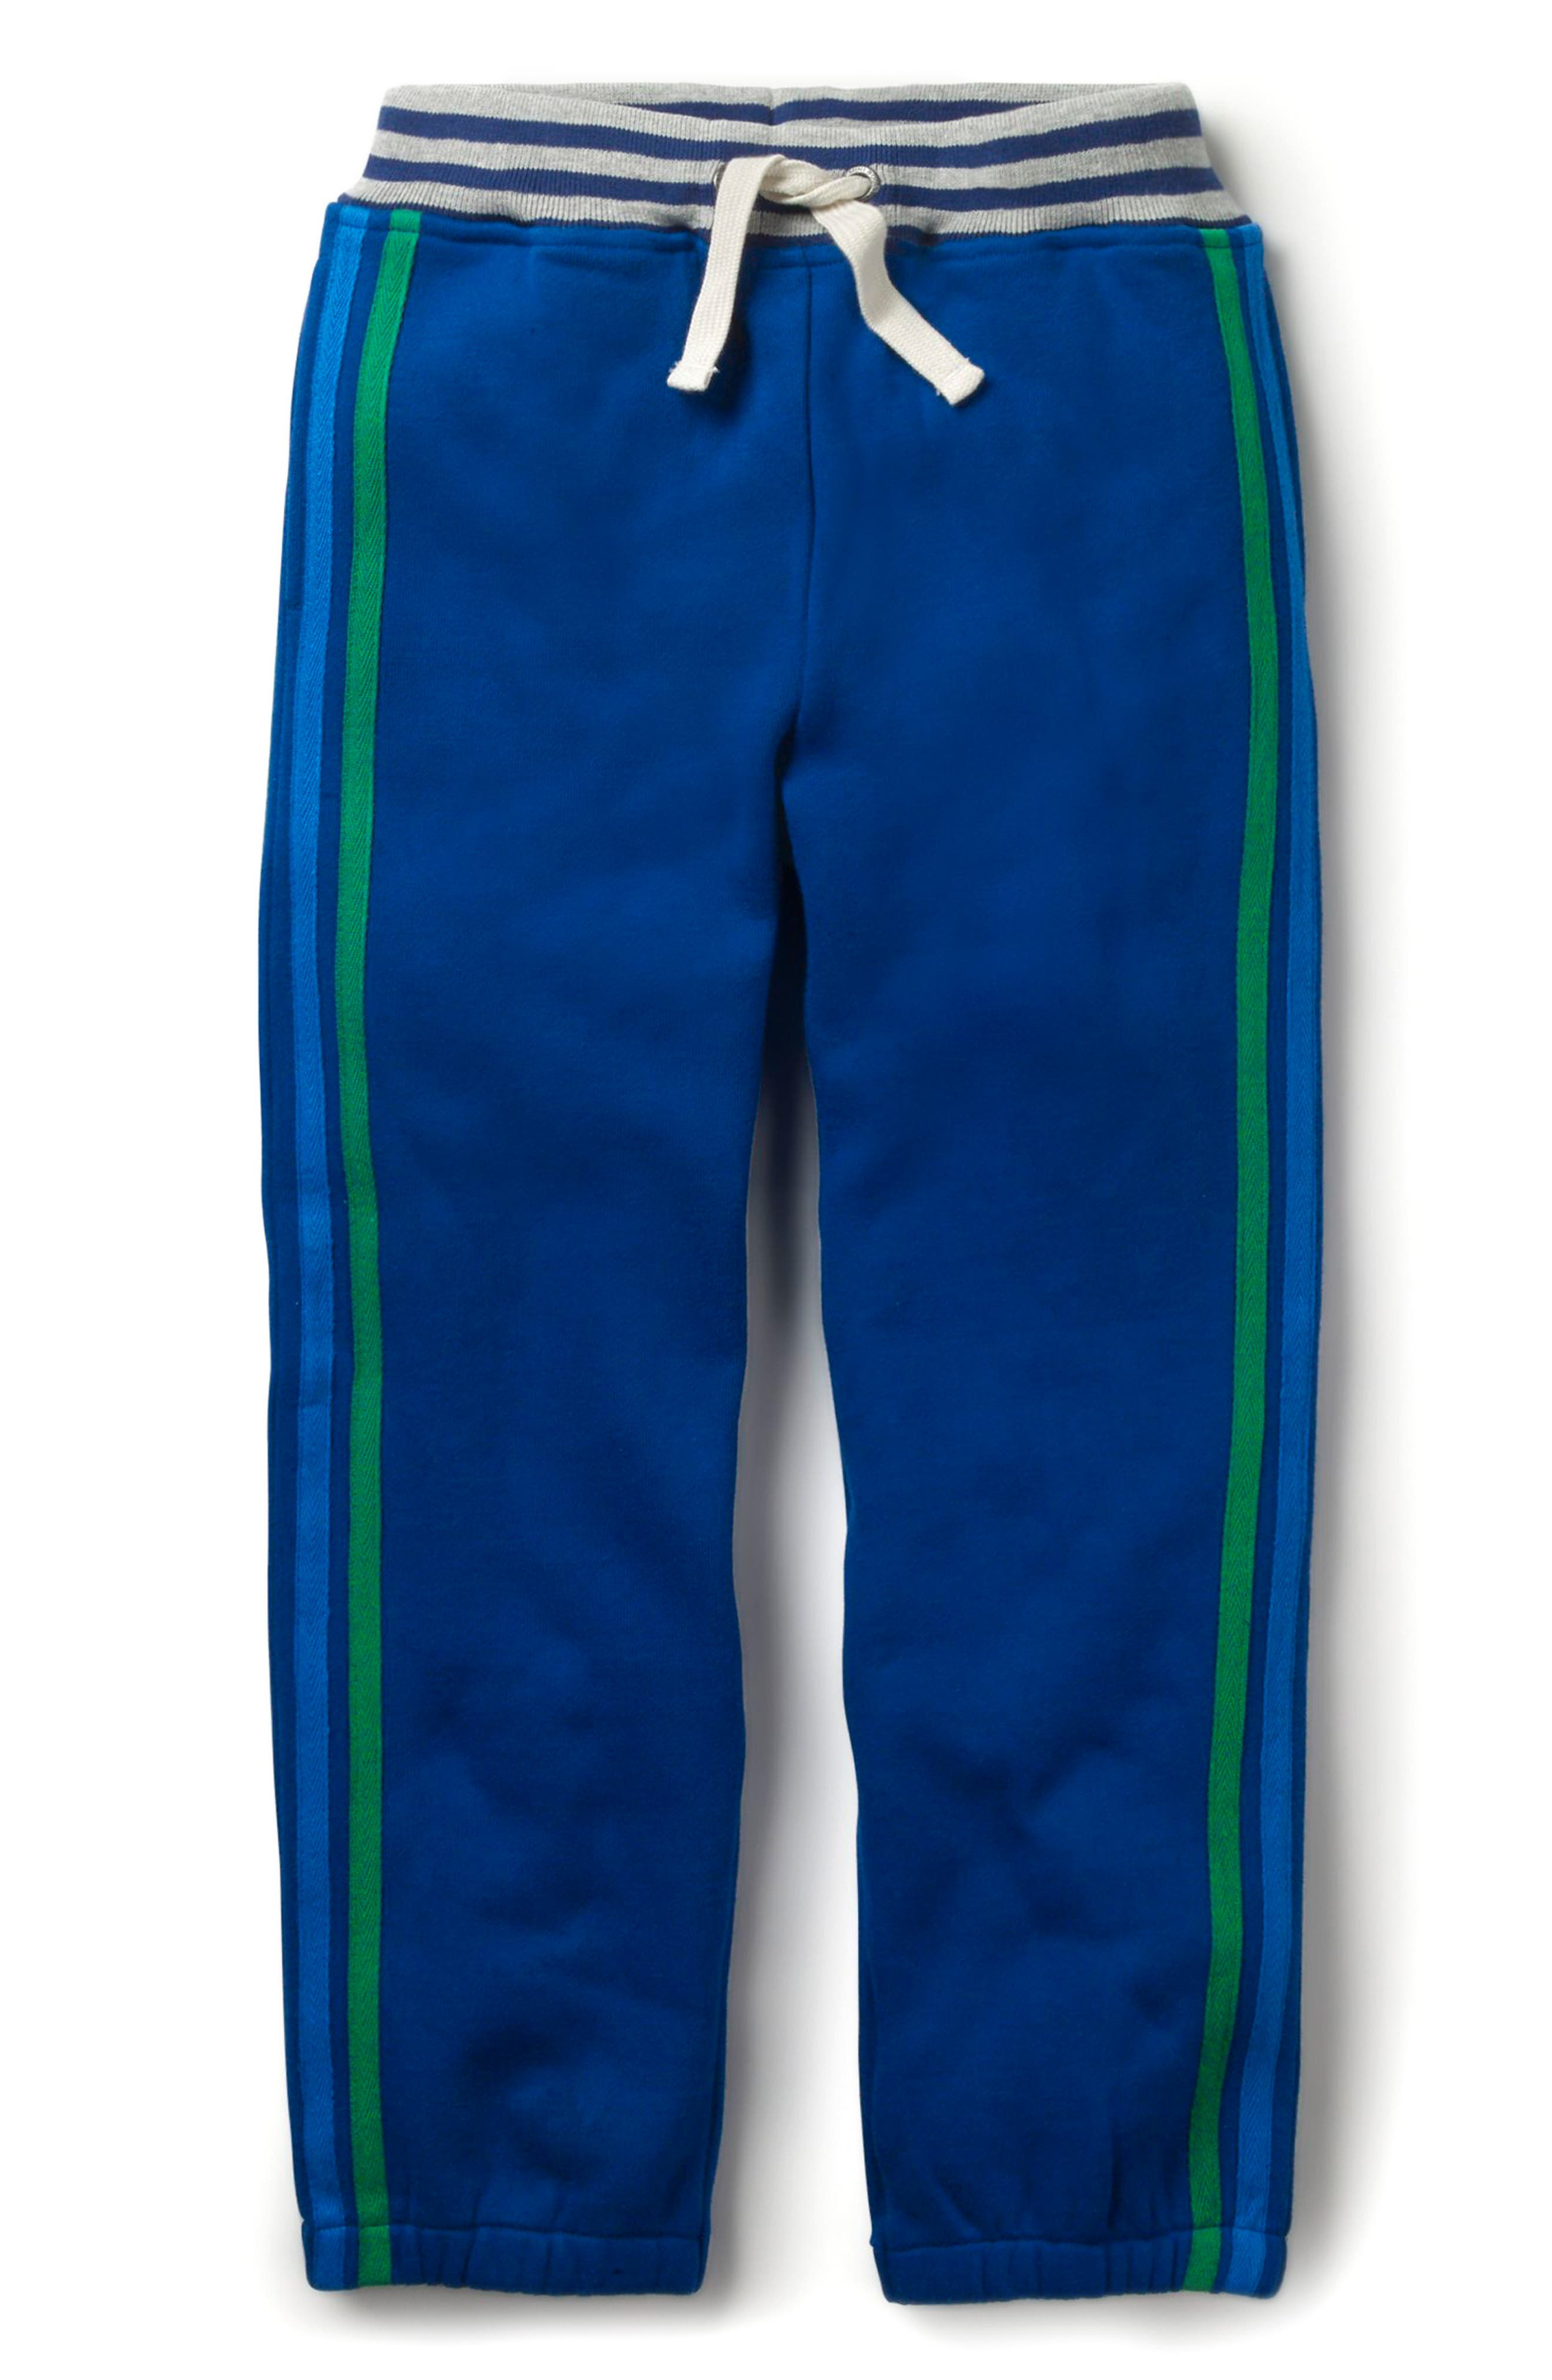 Main Image - Mini Boden Sweatpants (Toddler Boys, Little Boys & Big Boys)